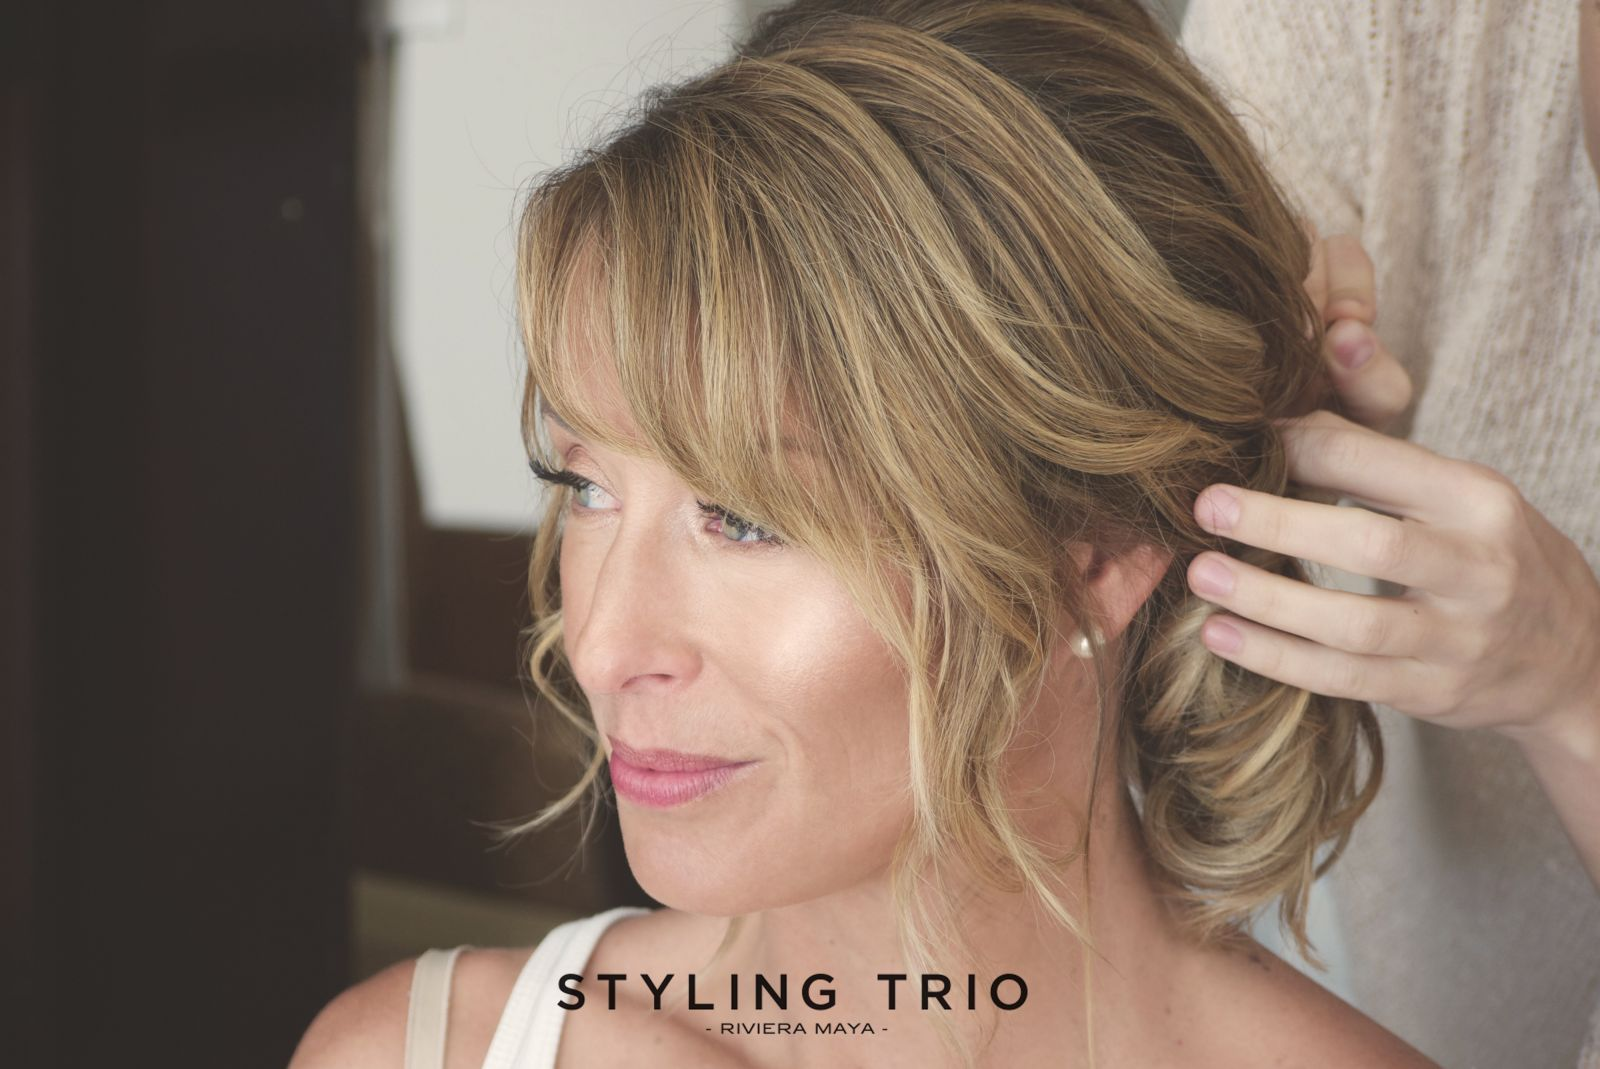 Hair by Styling Trio